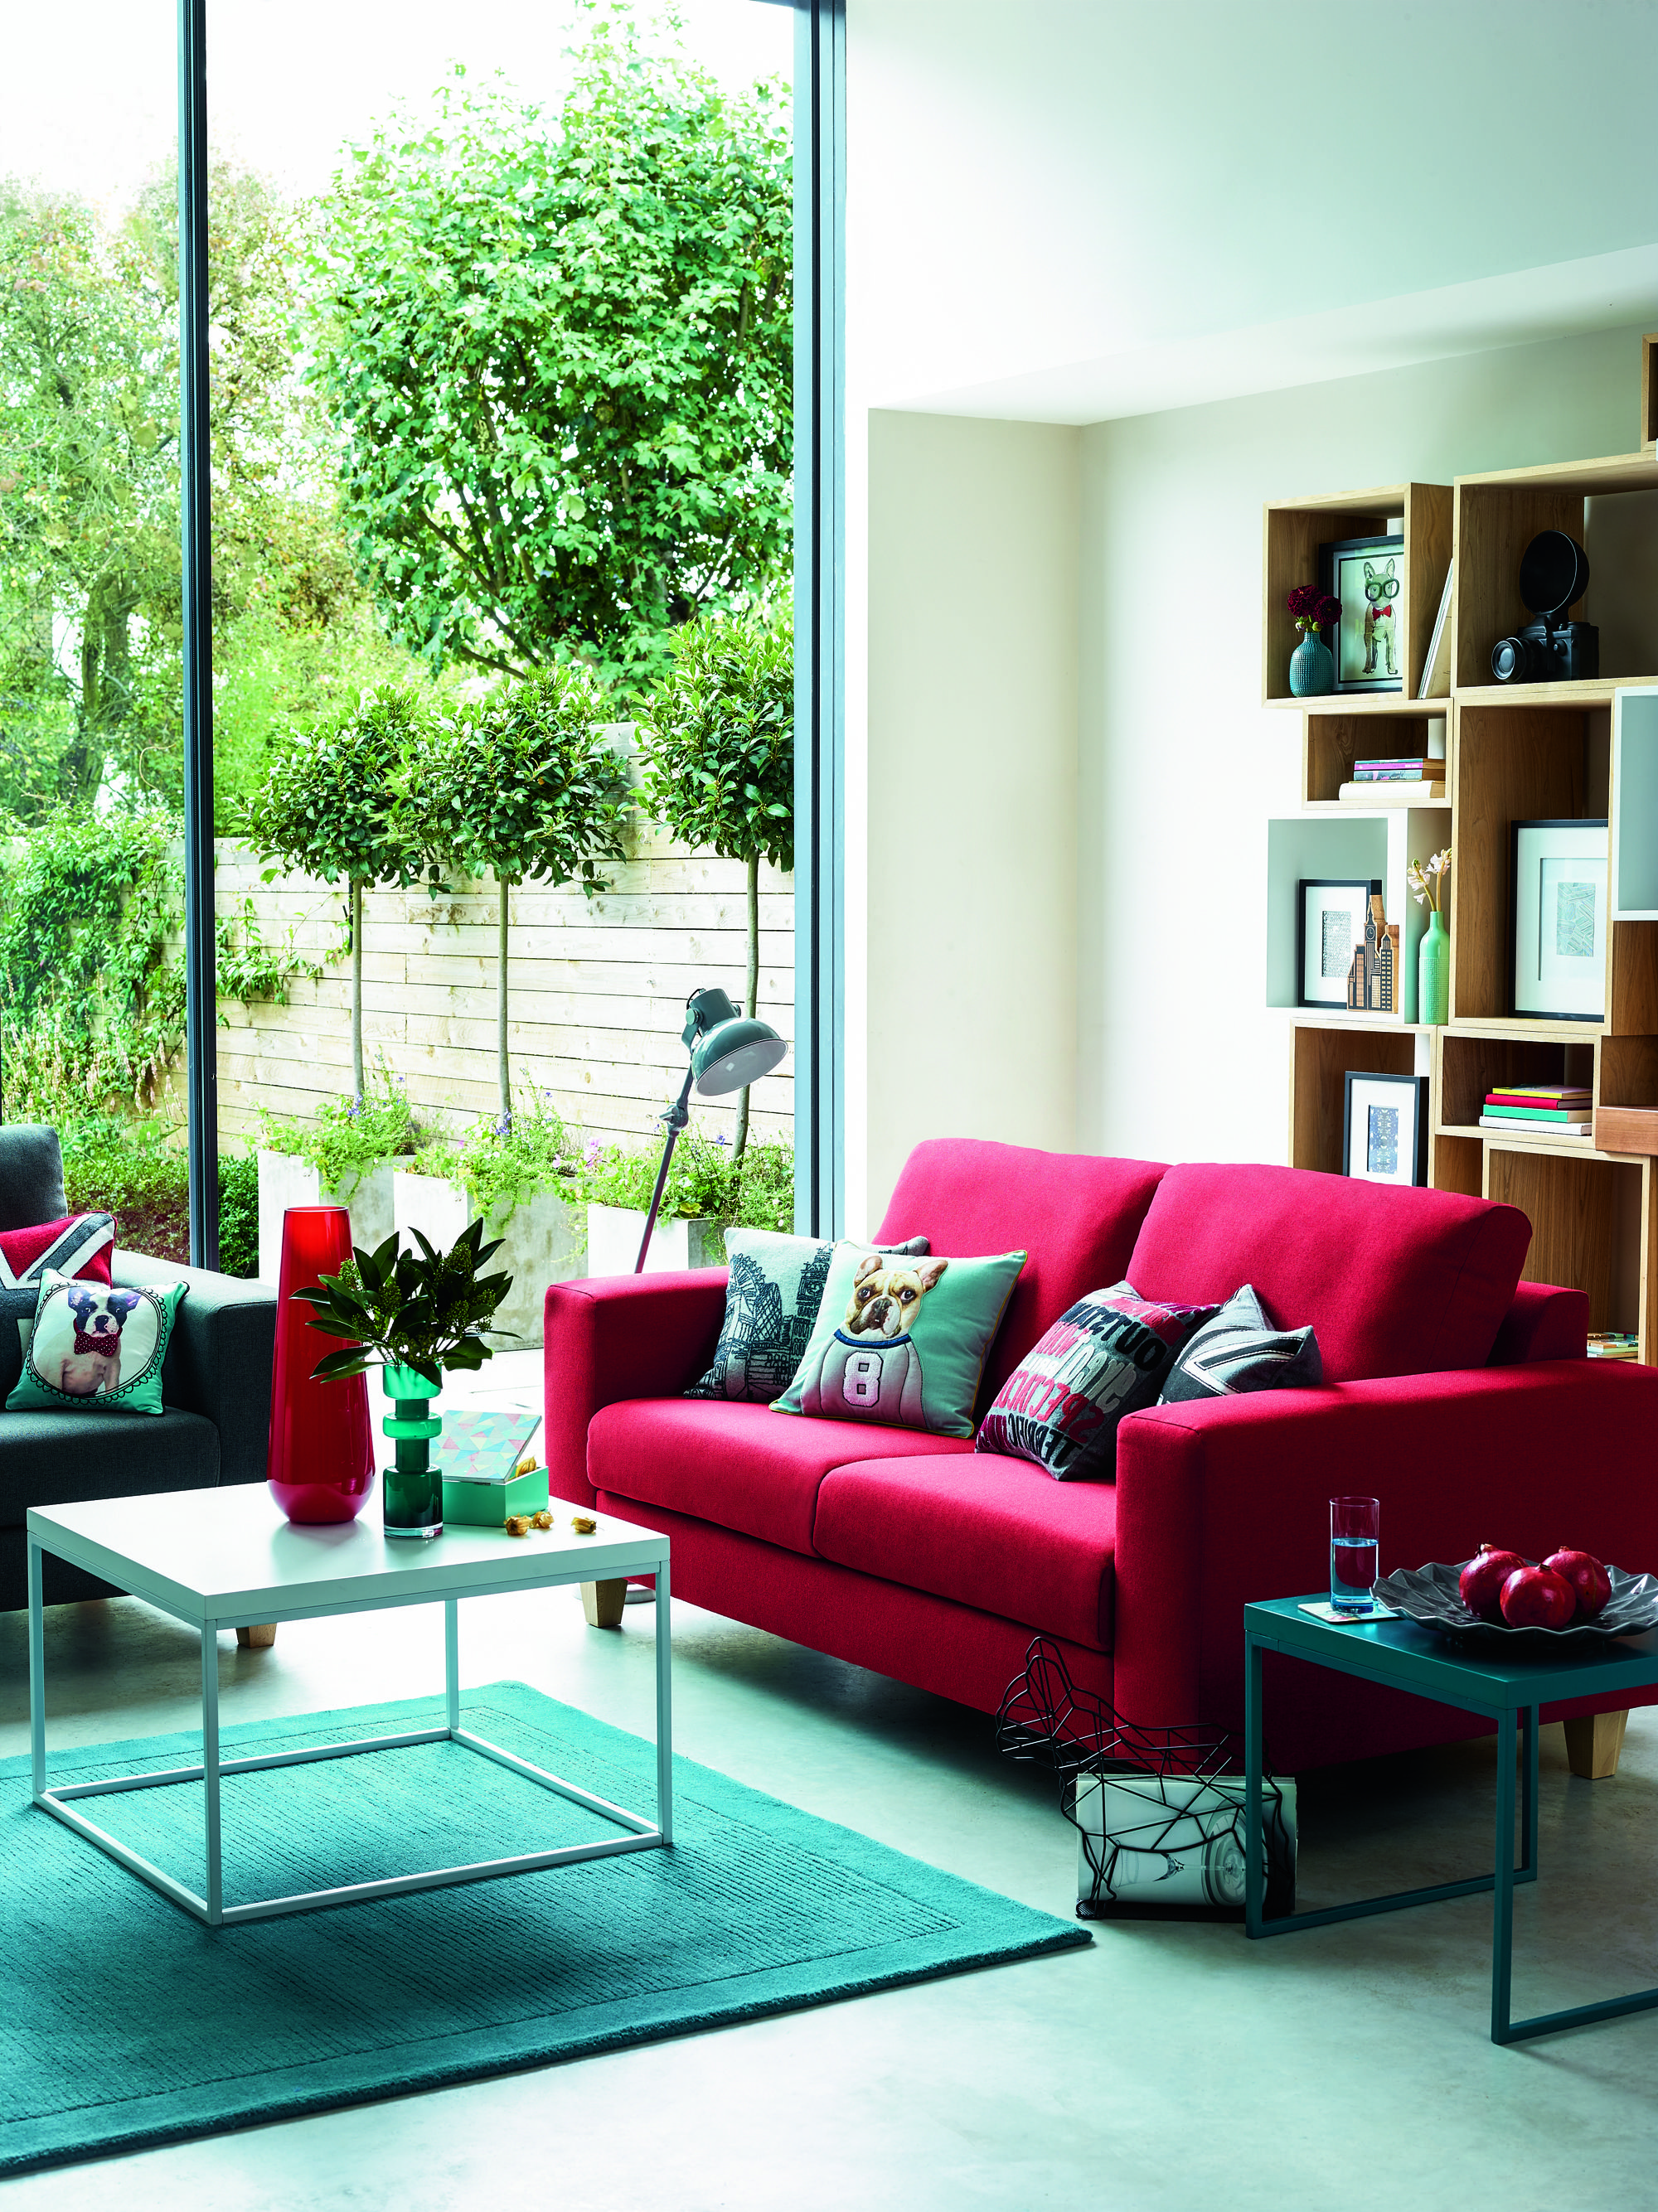 Peachy Bright Red Sofa Green Carpet And Bright Accessories Get Download Free Architecture Designs Scobabritishbridgeorg